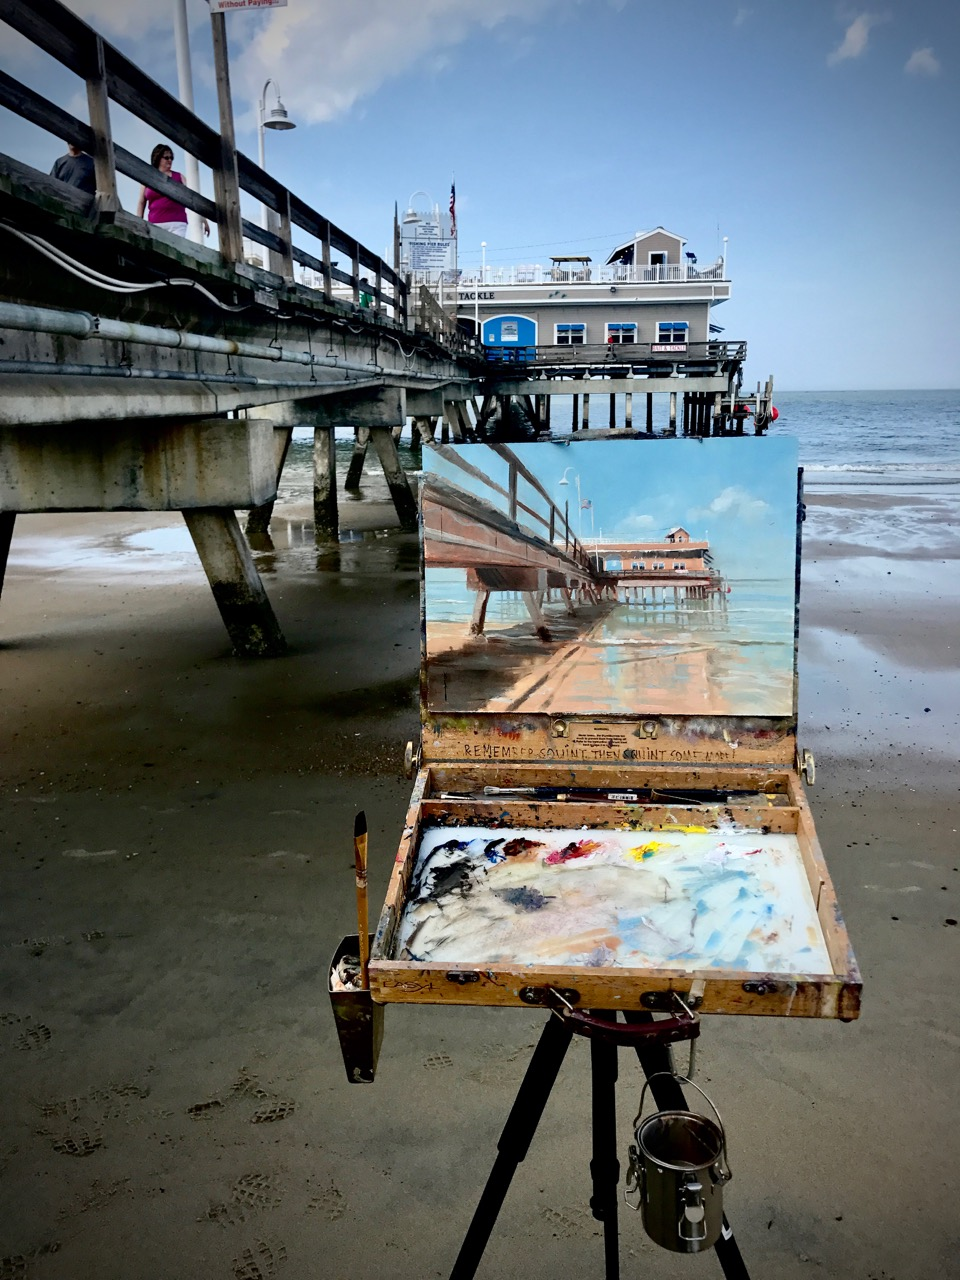 Having the right gear and equipment can make or break a day at the beach painting.